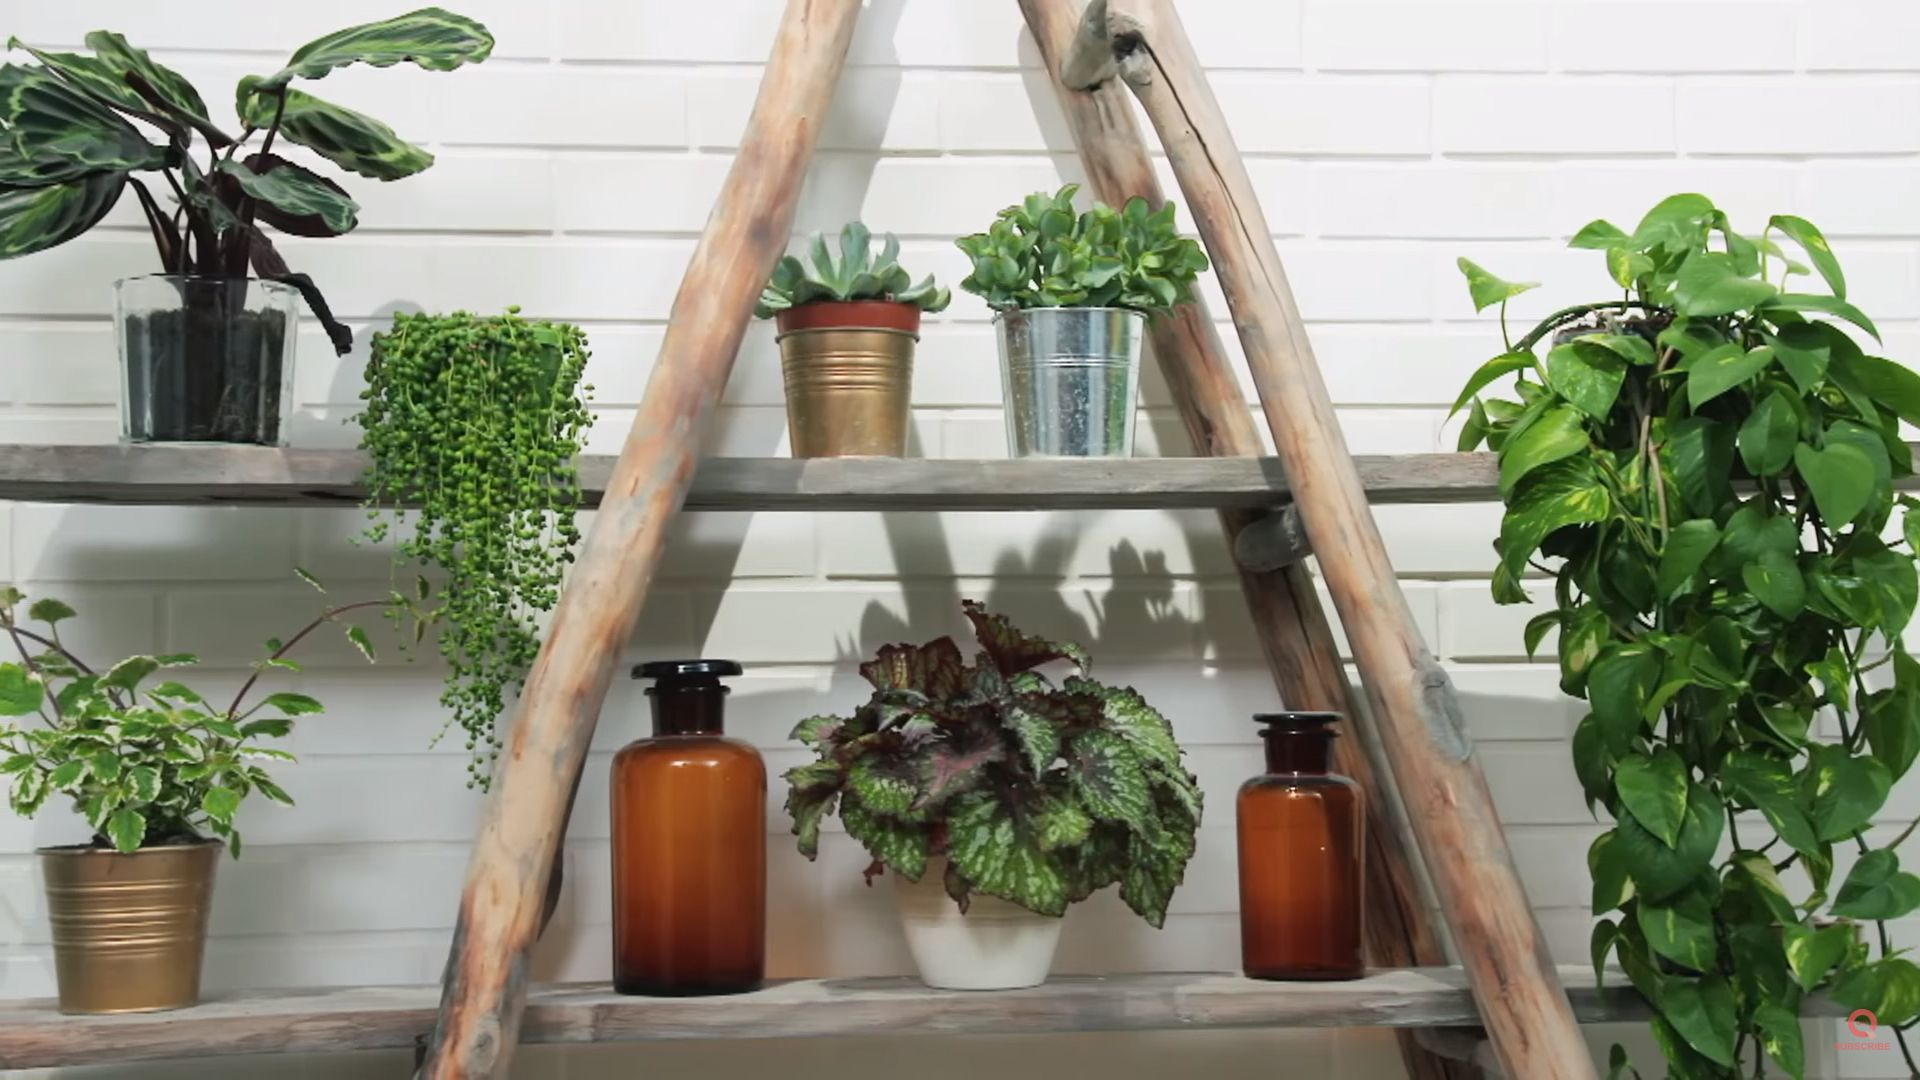 Houseplants Have Been Climbing Up The Home Decor Trend Ladder